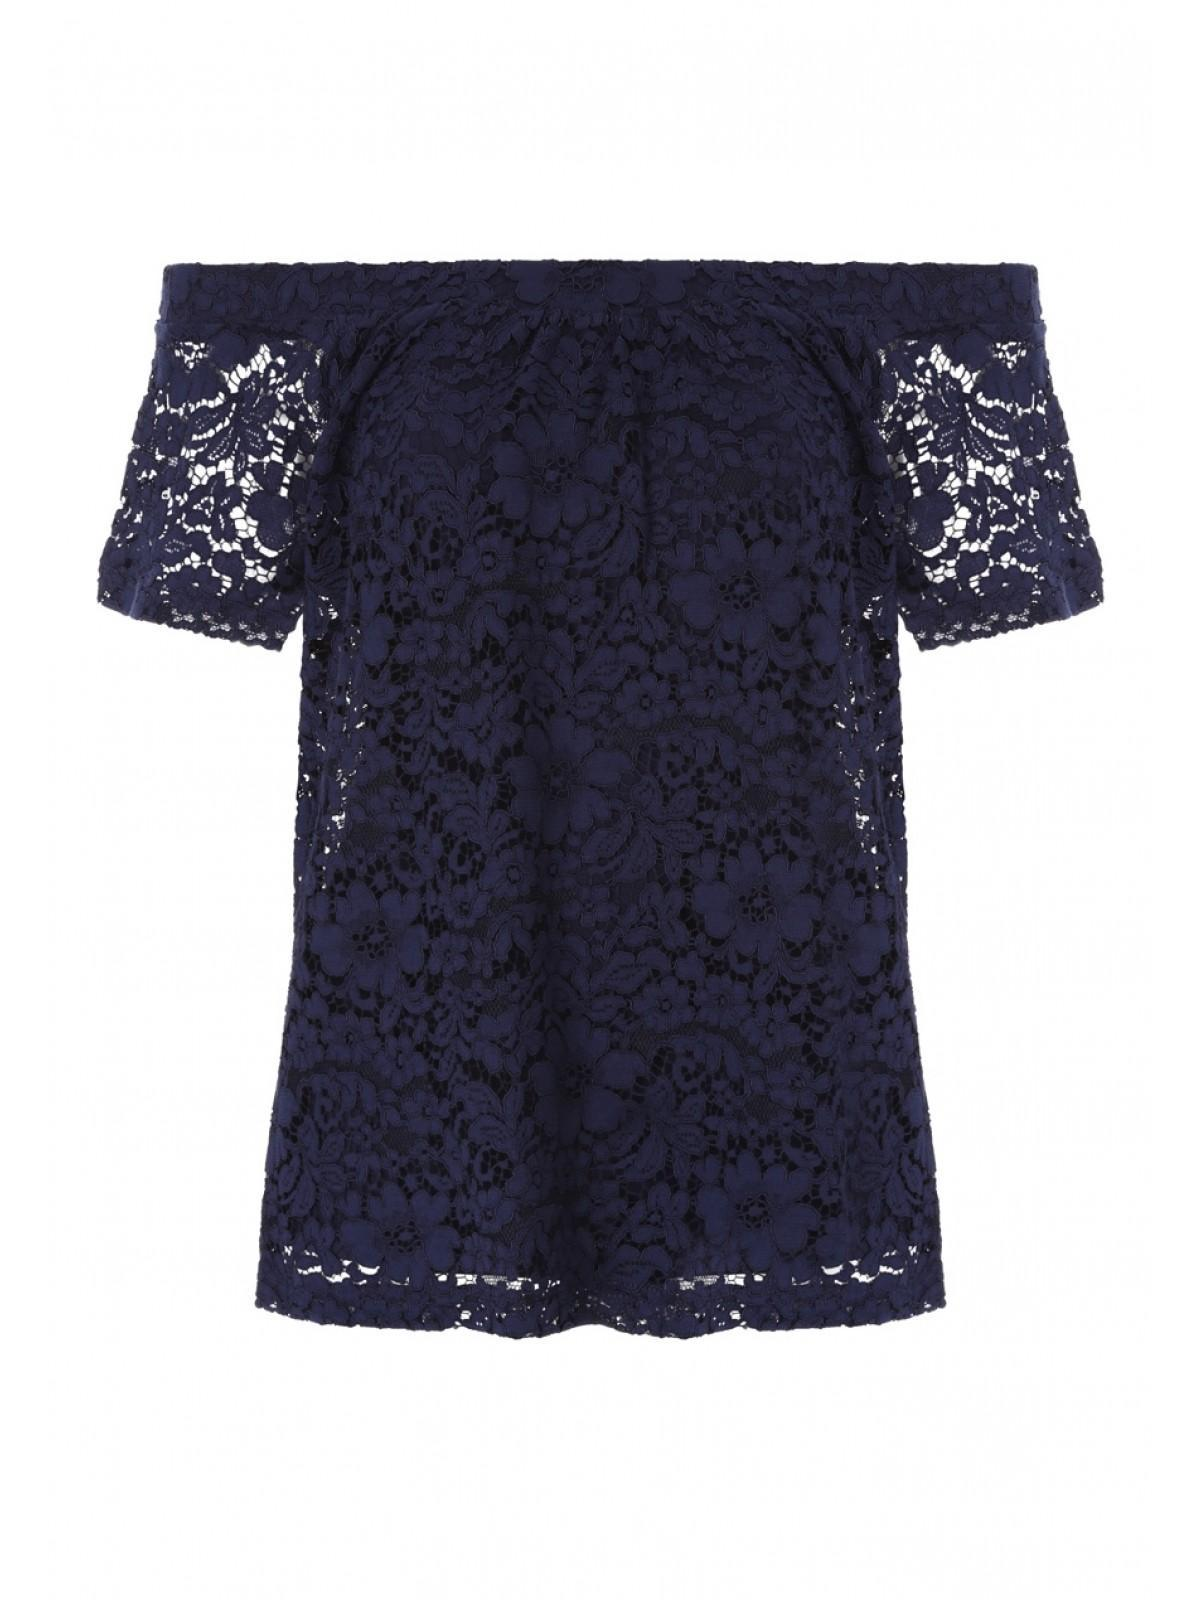 dee2b33c644 Home; Womens Navy Lace Bardot Top. Back. PreviousNext